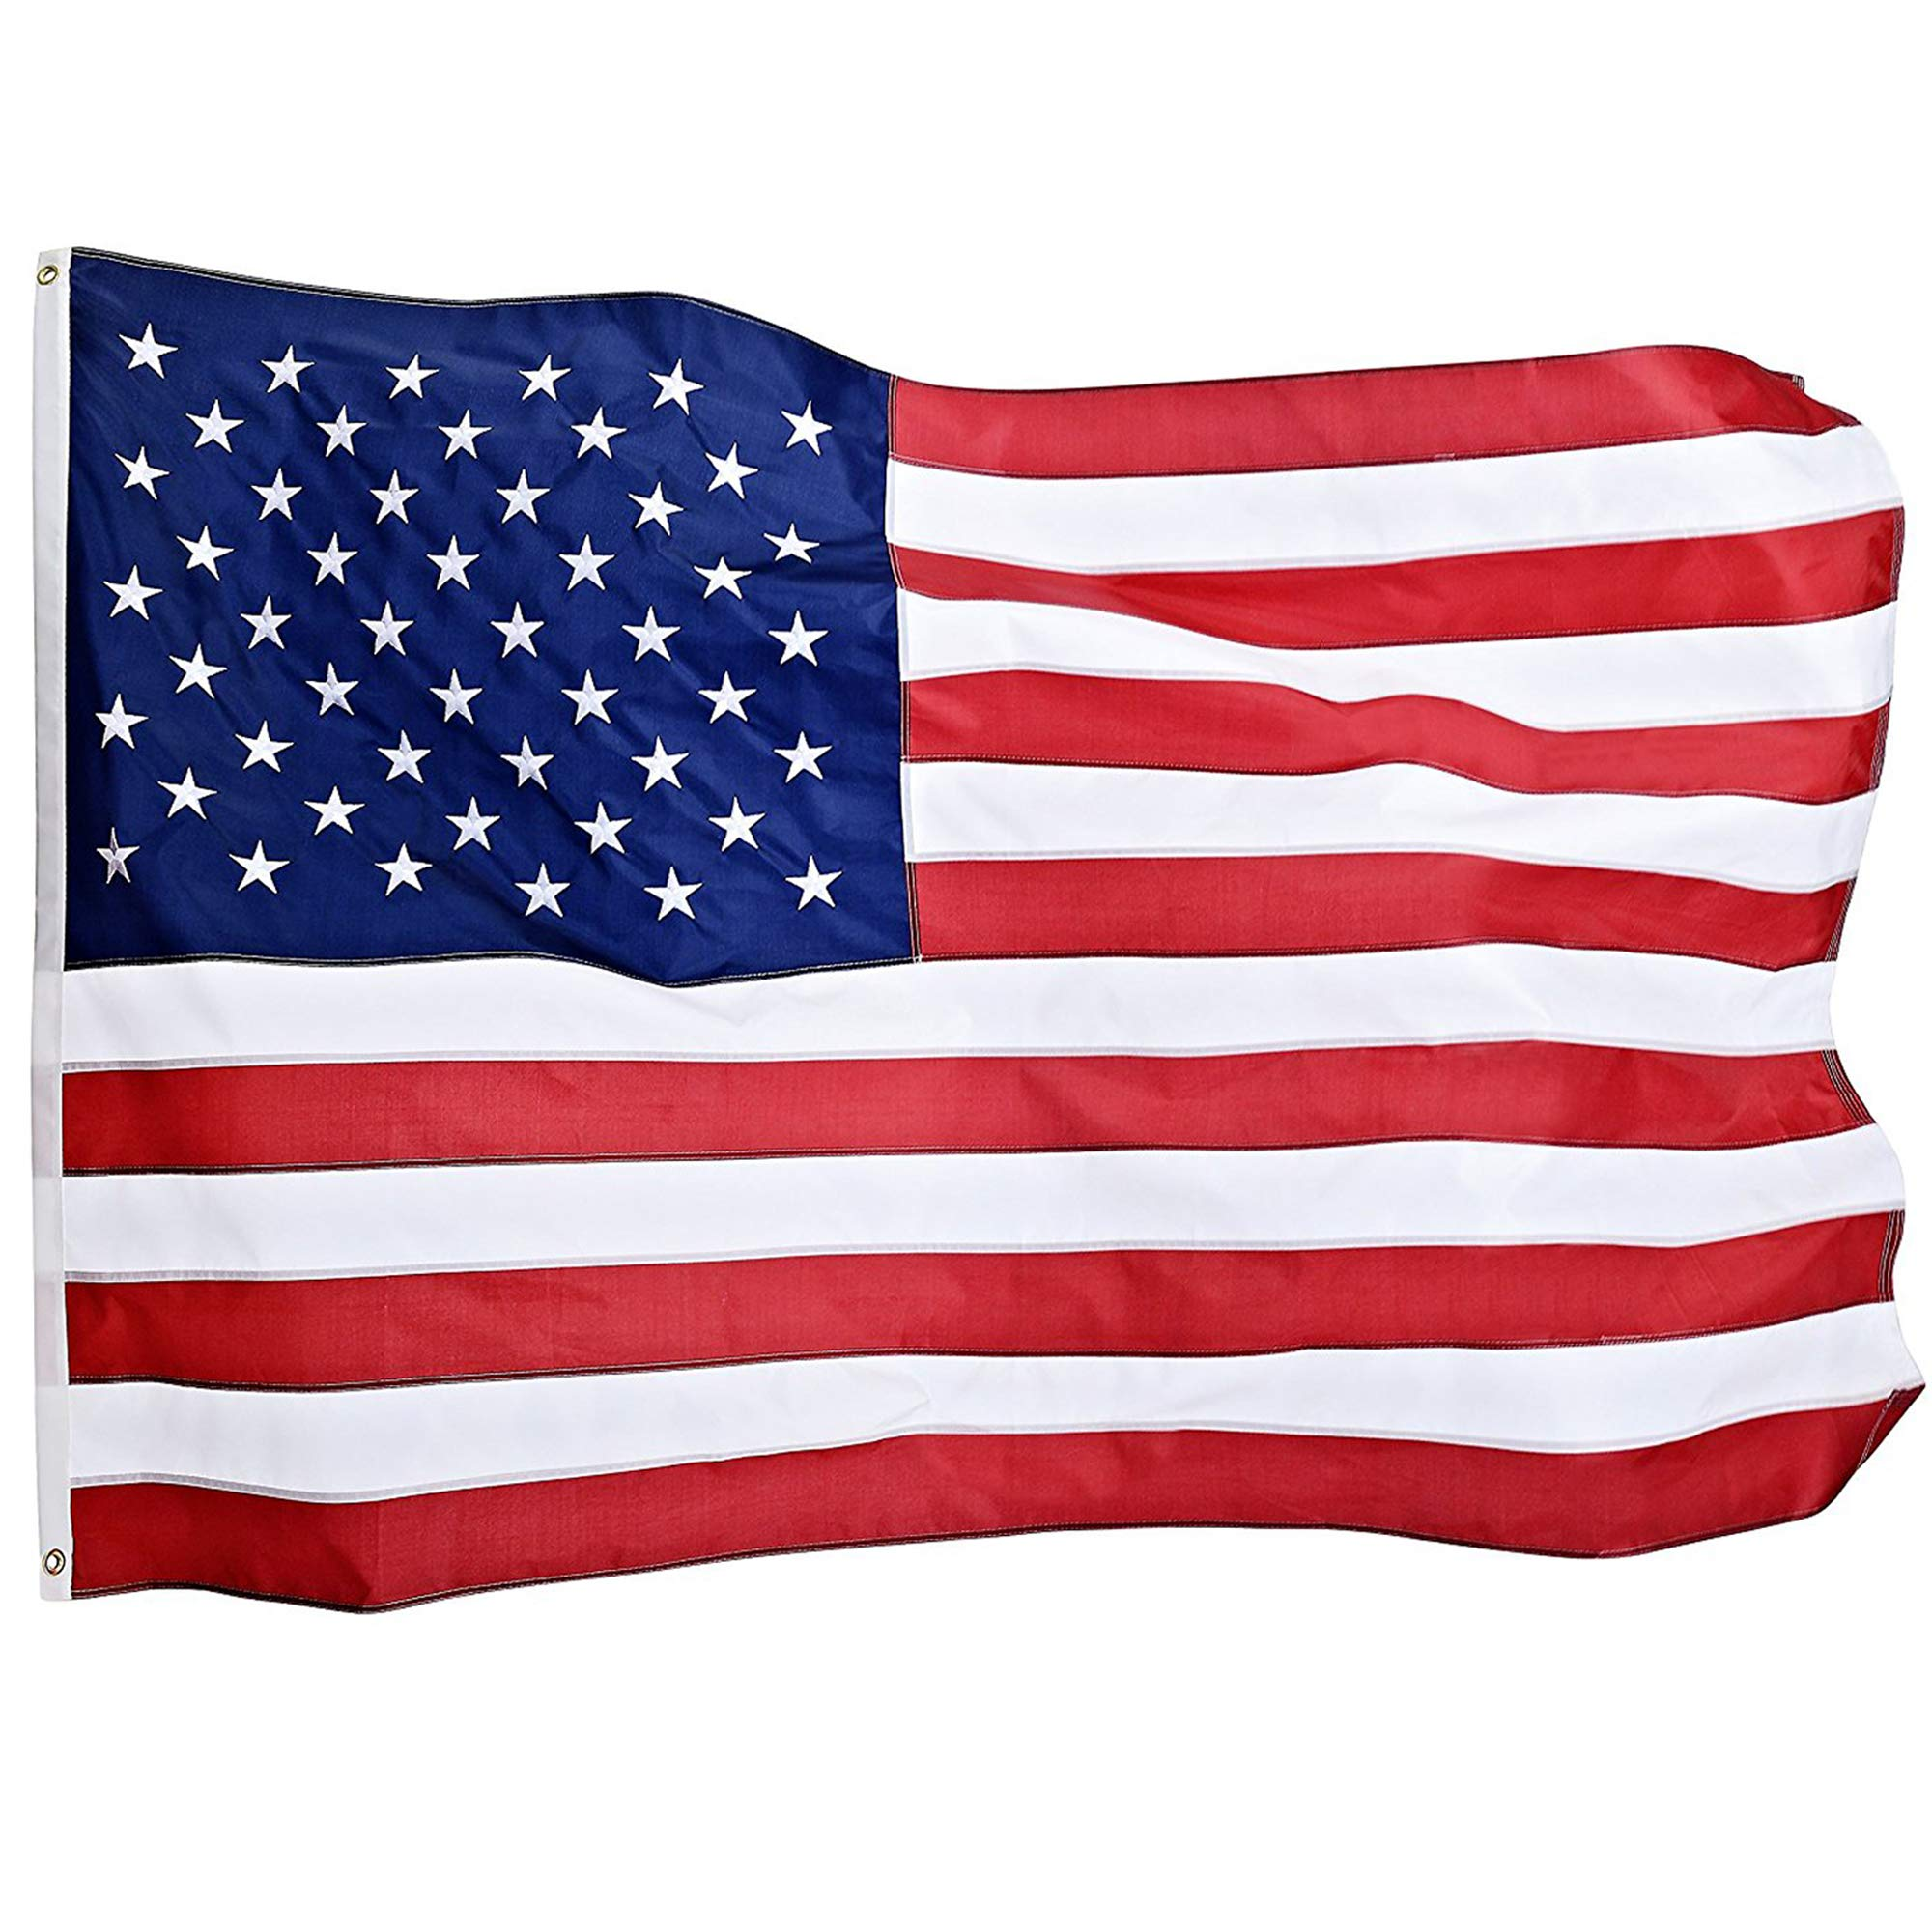 American Flag: Top Quality 4x6FT US Flag- Heavy-Use Nylon w/ Embroidered Stars & Sewn Stripes - Deluxe Fast-Dry, All-Weather USA Flag For Outdoors & Indoors- Fly It With Pride